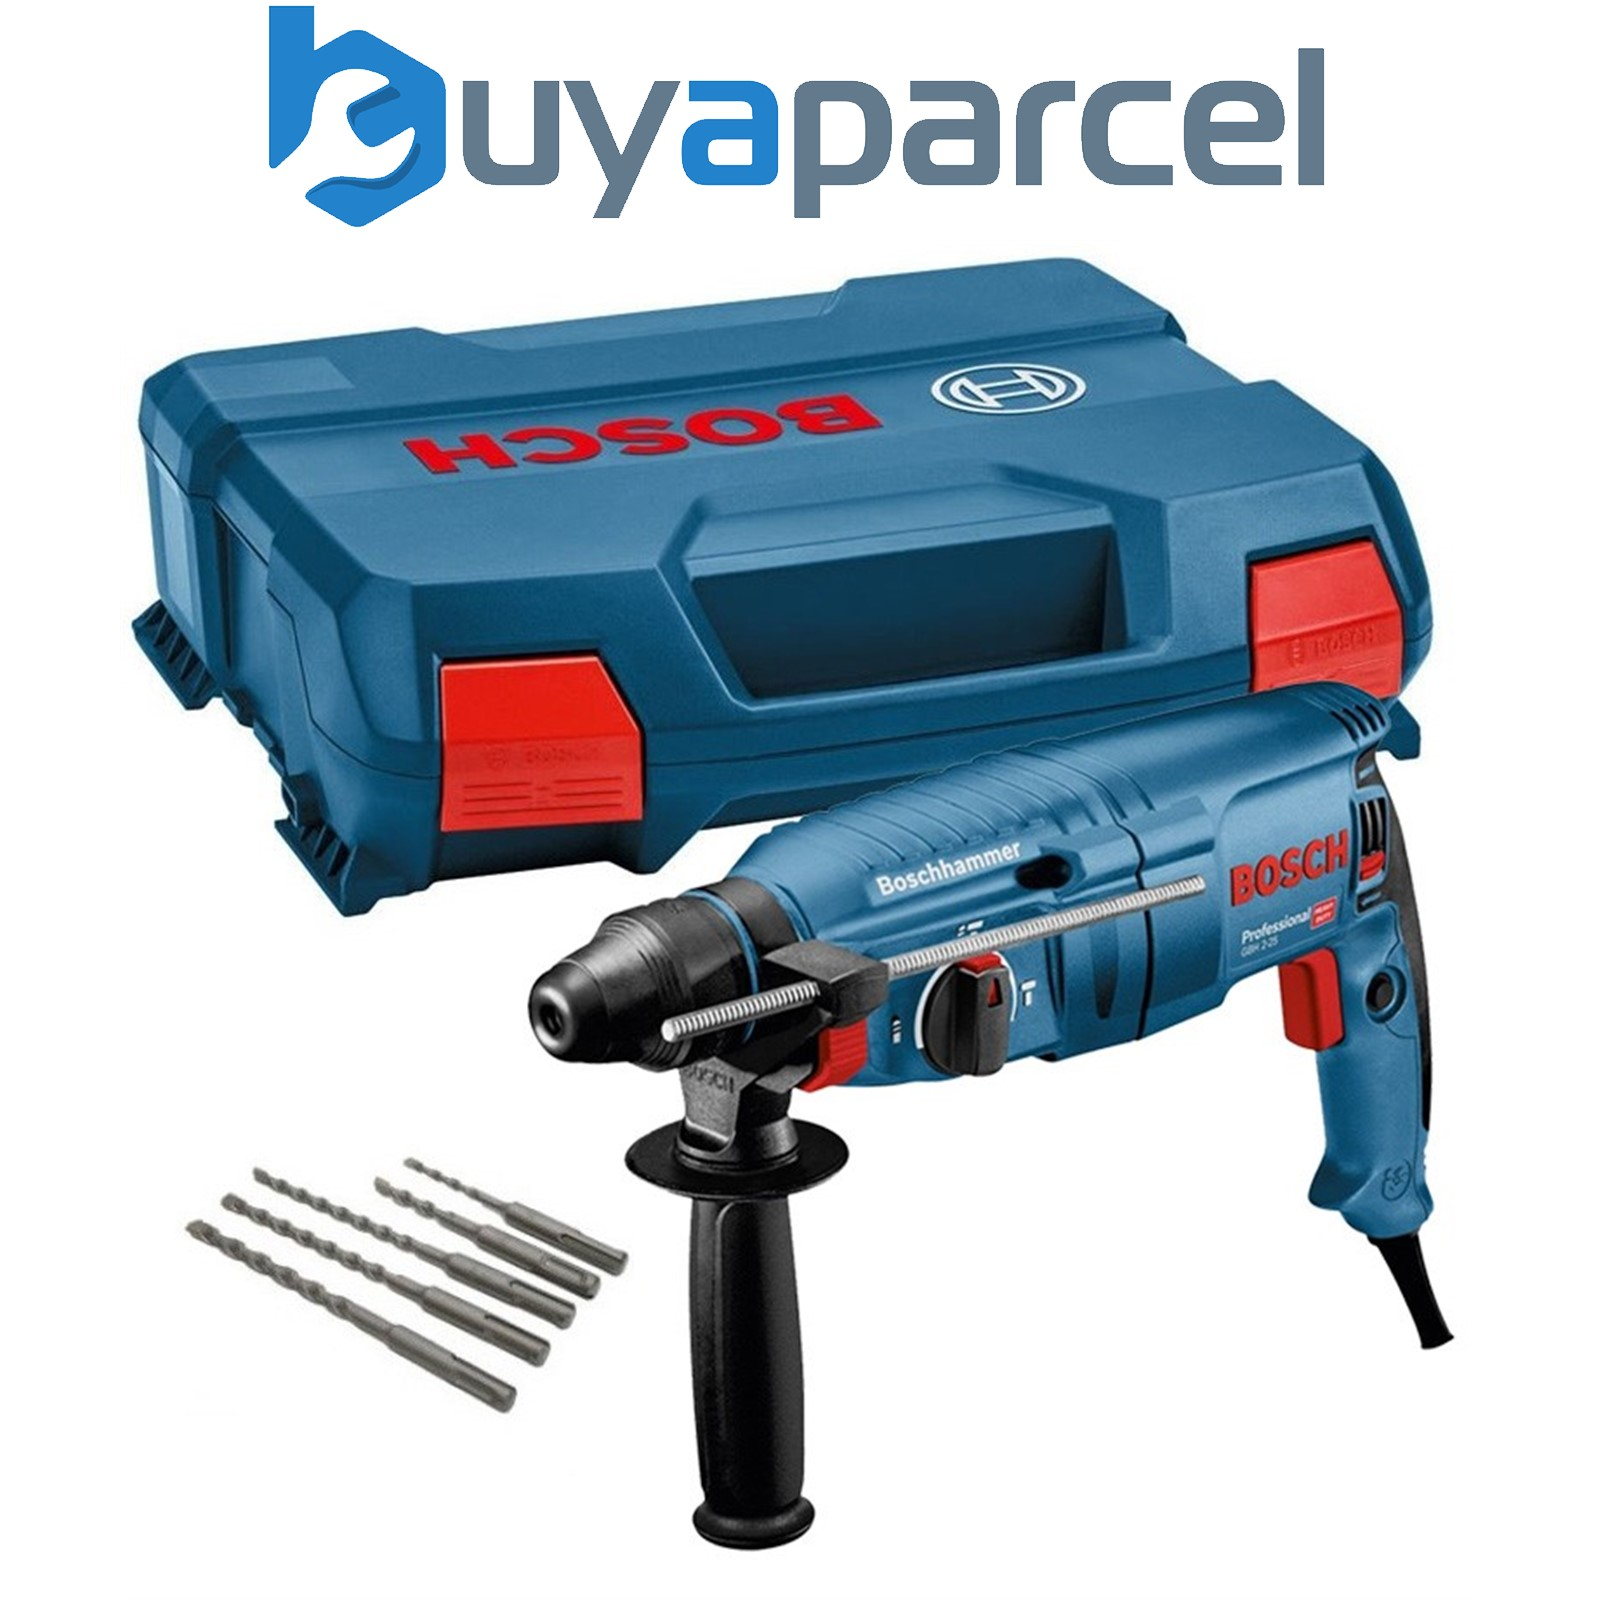 bosch gbh2 26dre 240v sds plus rotary hammer drill 800w 5 piece sds bit set ebay. Black Bedroom Furniture Sets. Home Design Ideas